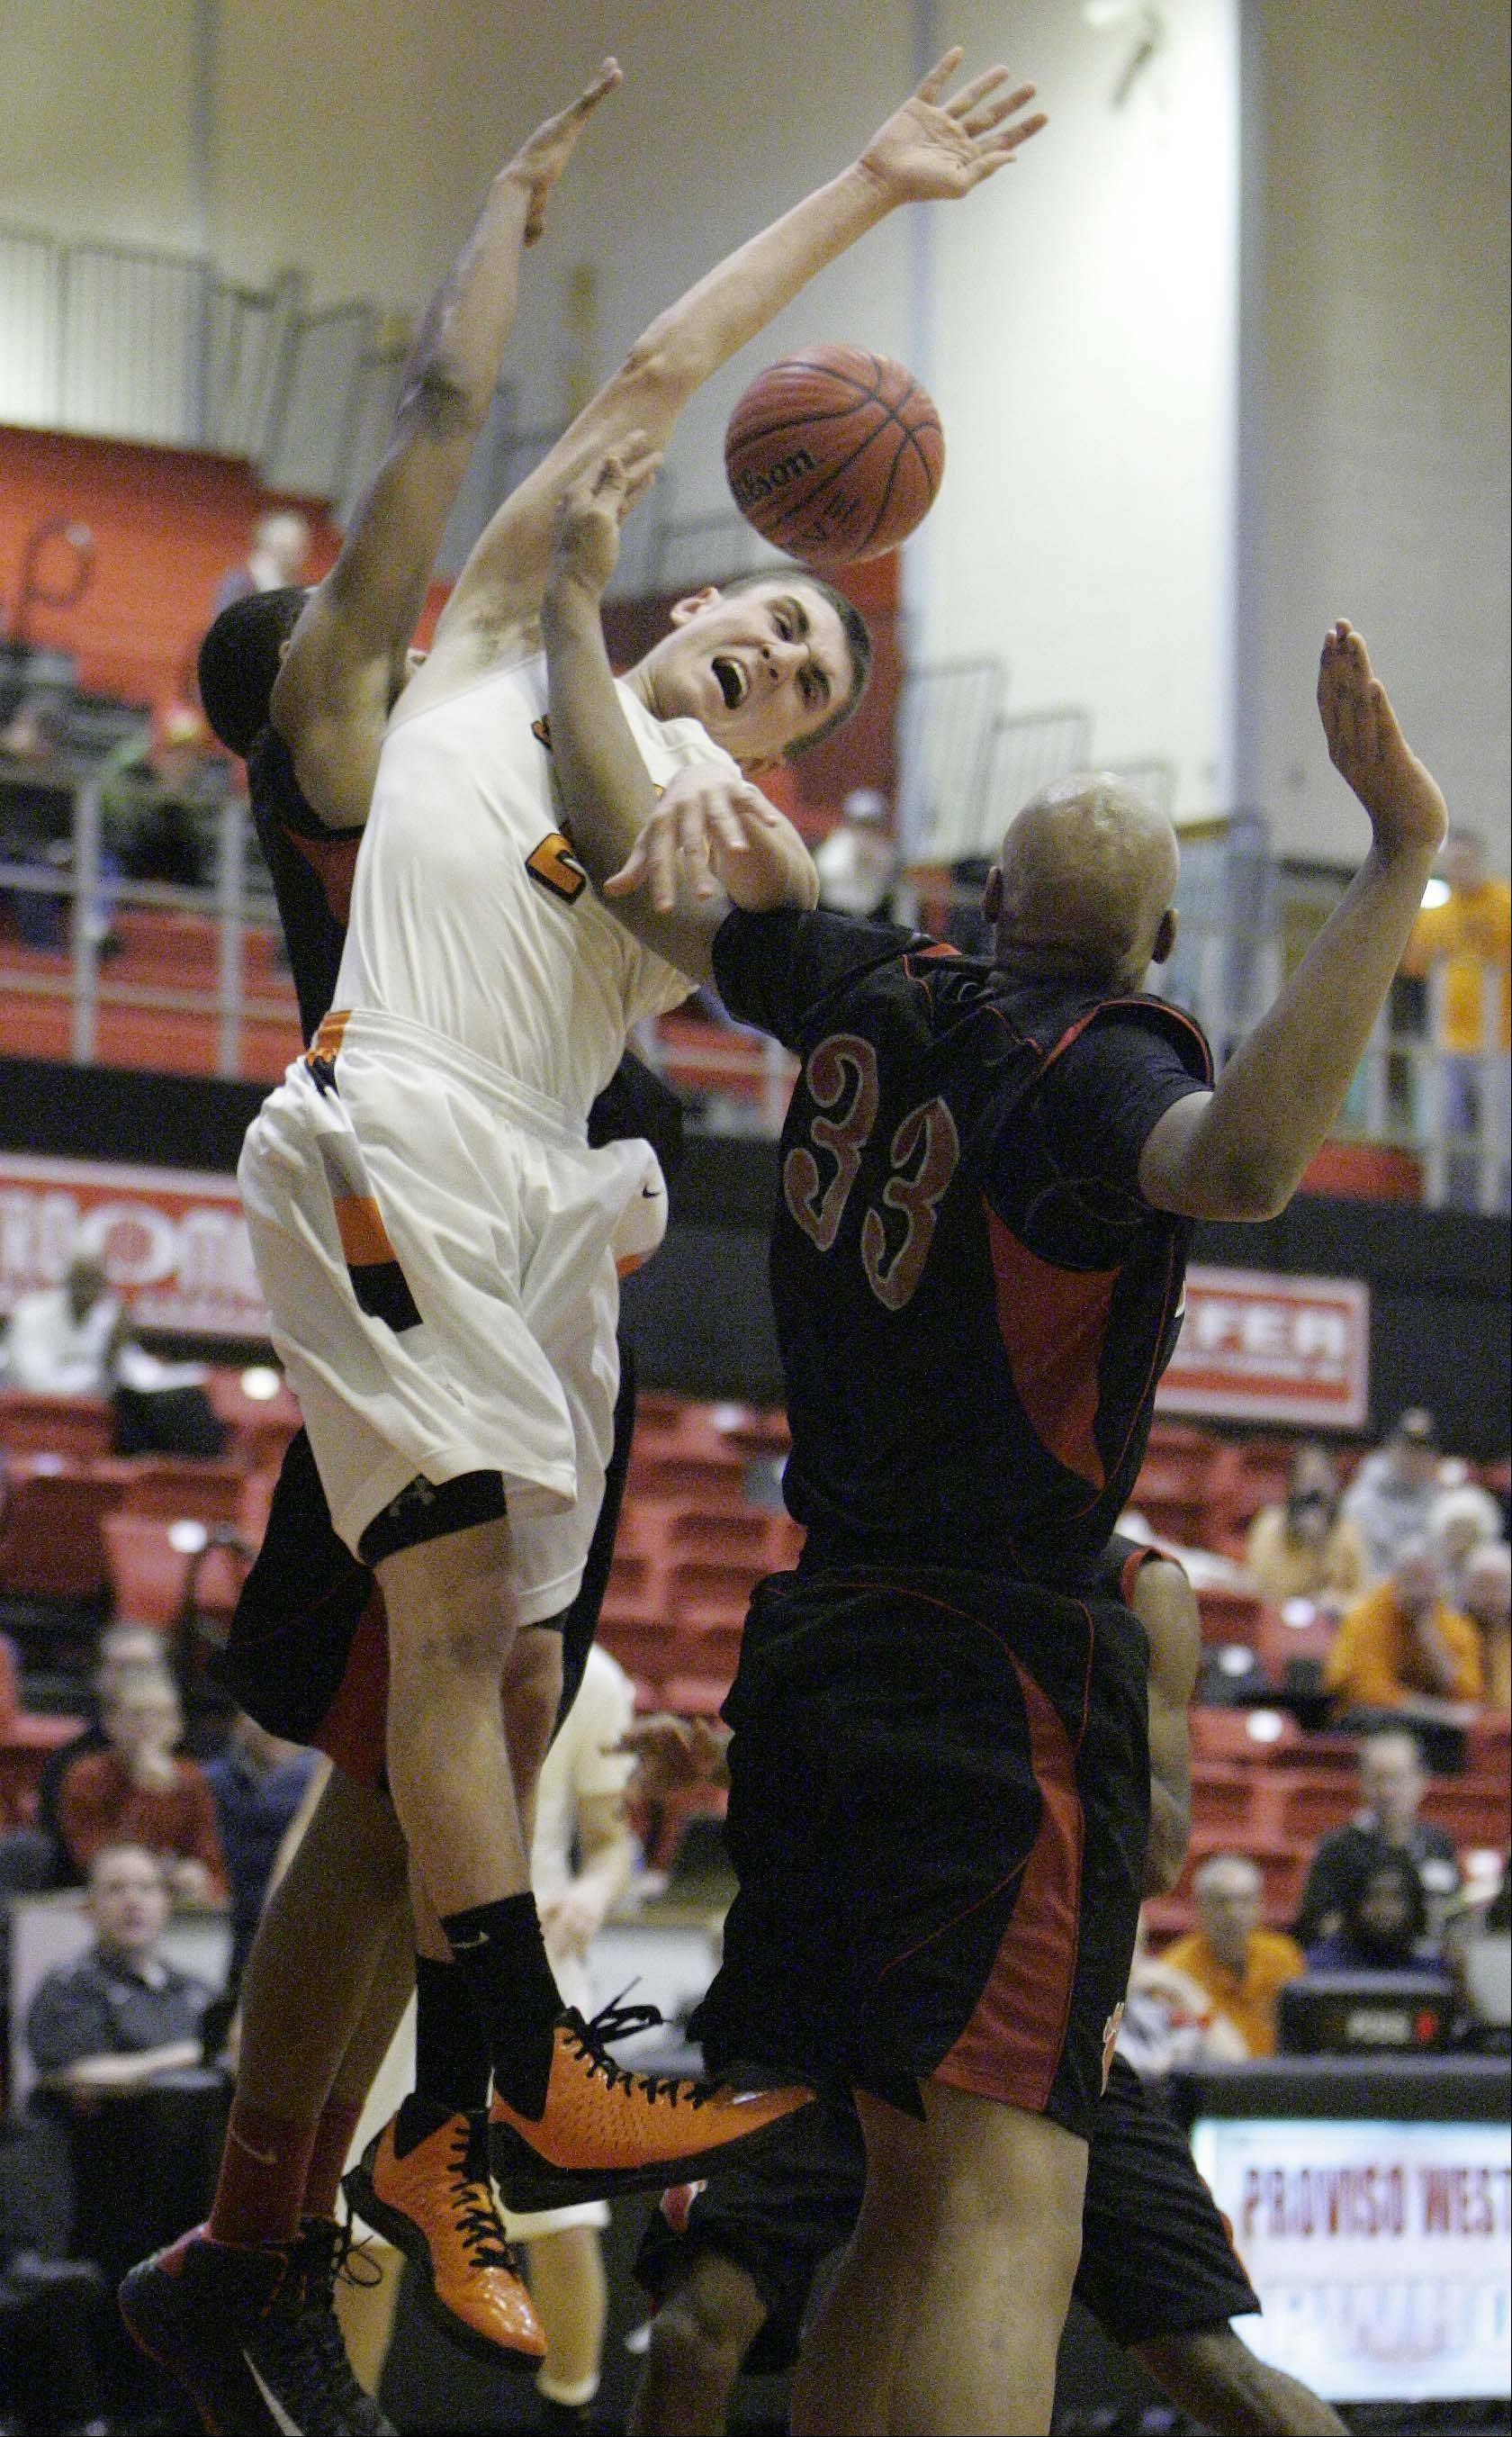 St. Charles East's Dom Adduci, 2, goes to the hoop past Von Steuben's Malachi Matias, 33, at the Proviso West Holiday Tournament in Hillside on Wednesday.